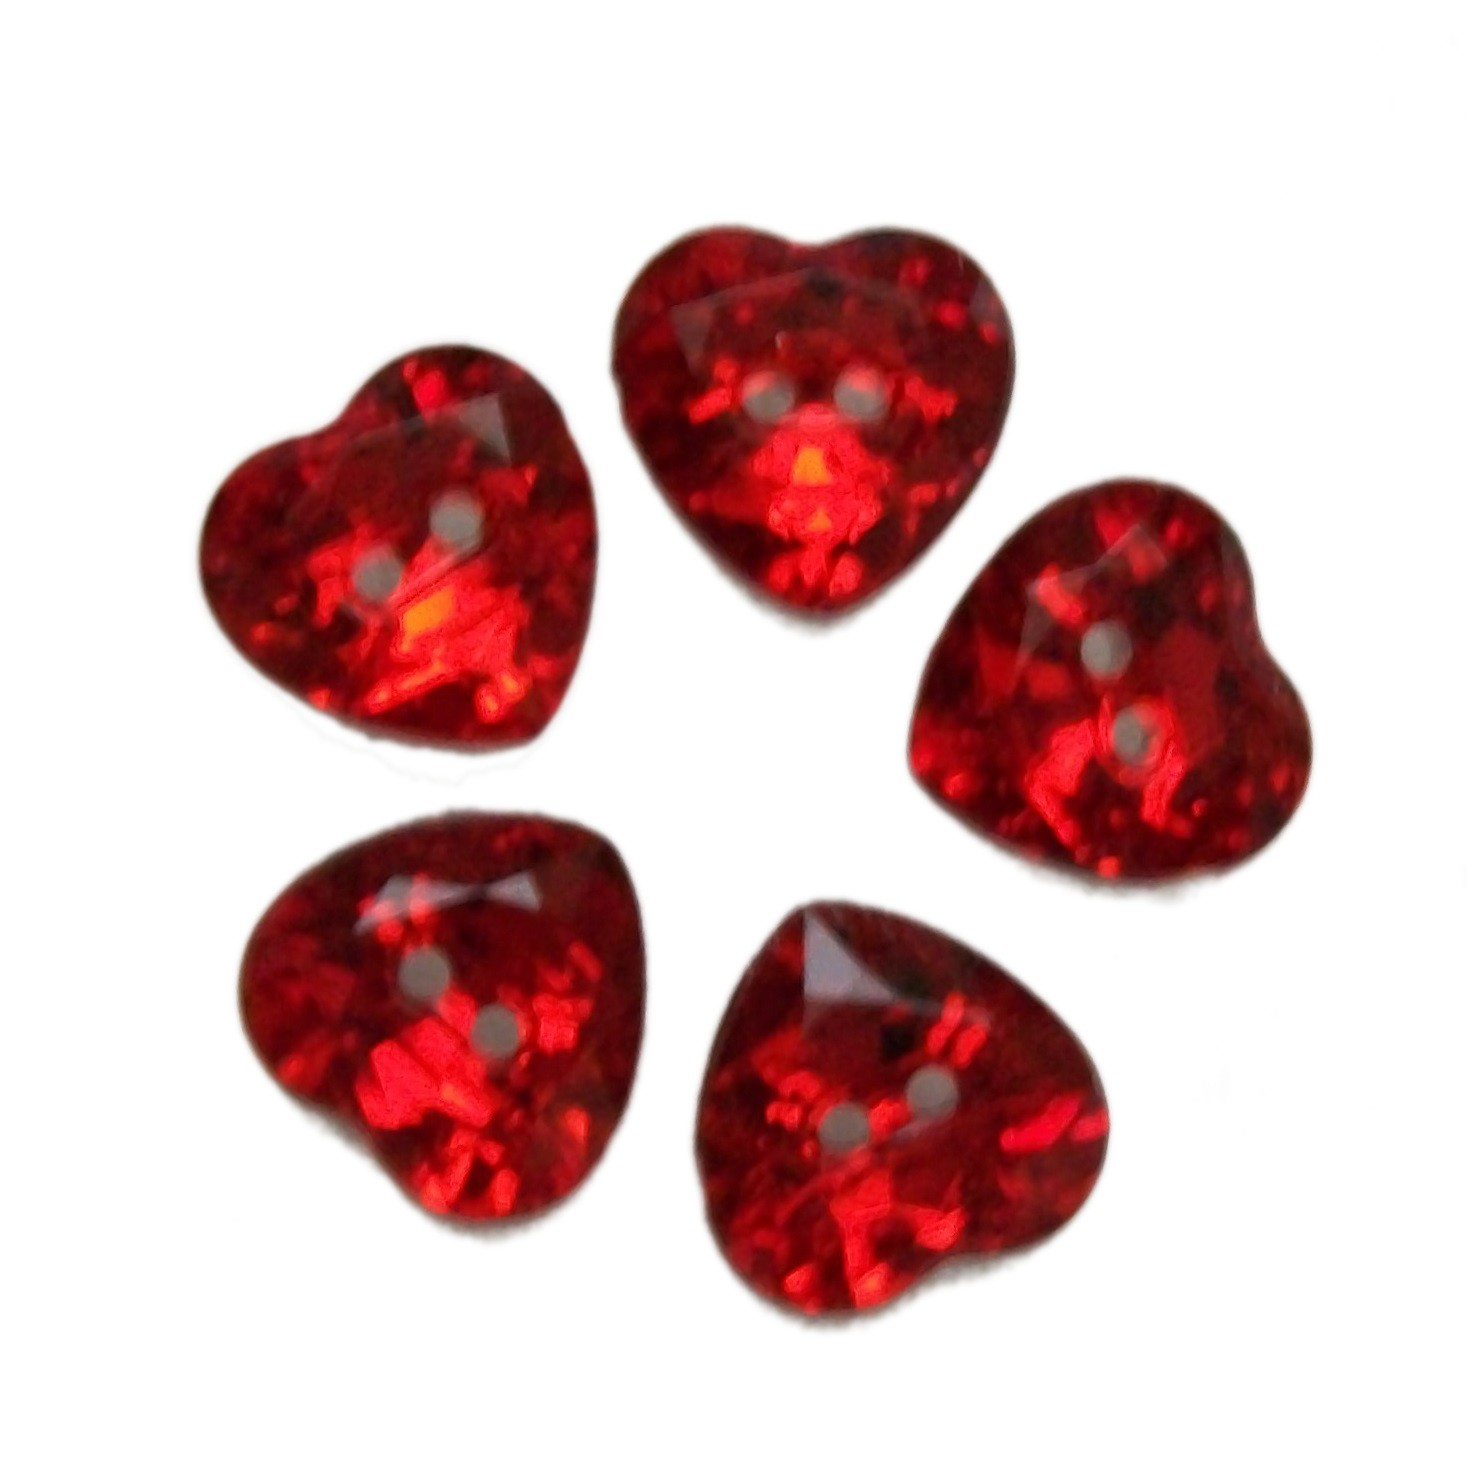 Acrylic Crystal Effect Heart Shape Buttons 16mm Red Pack of 5